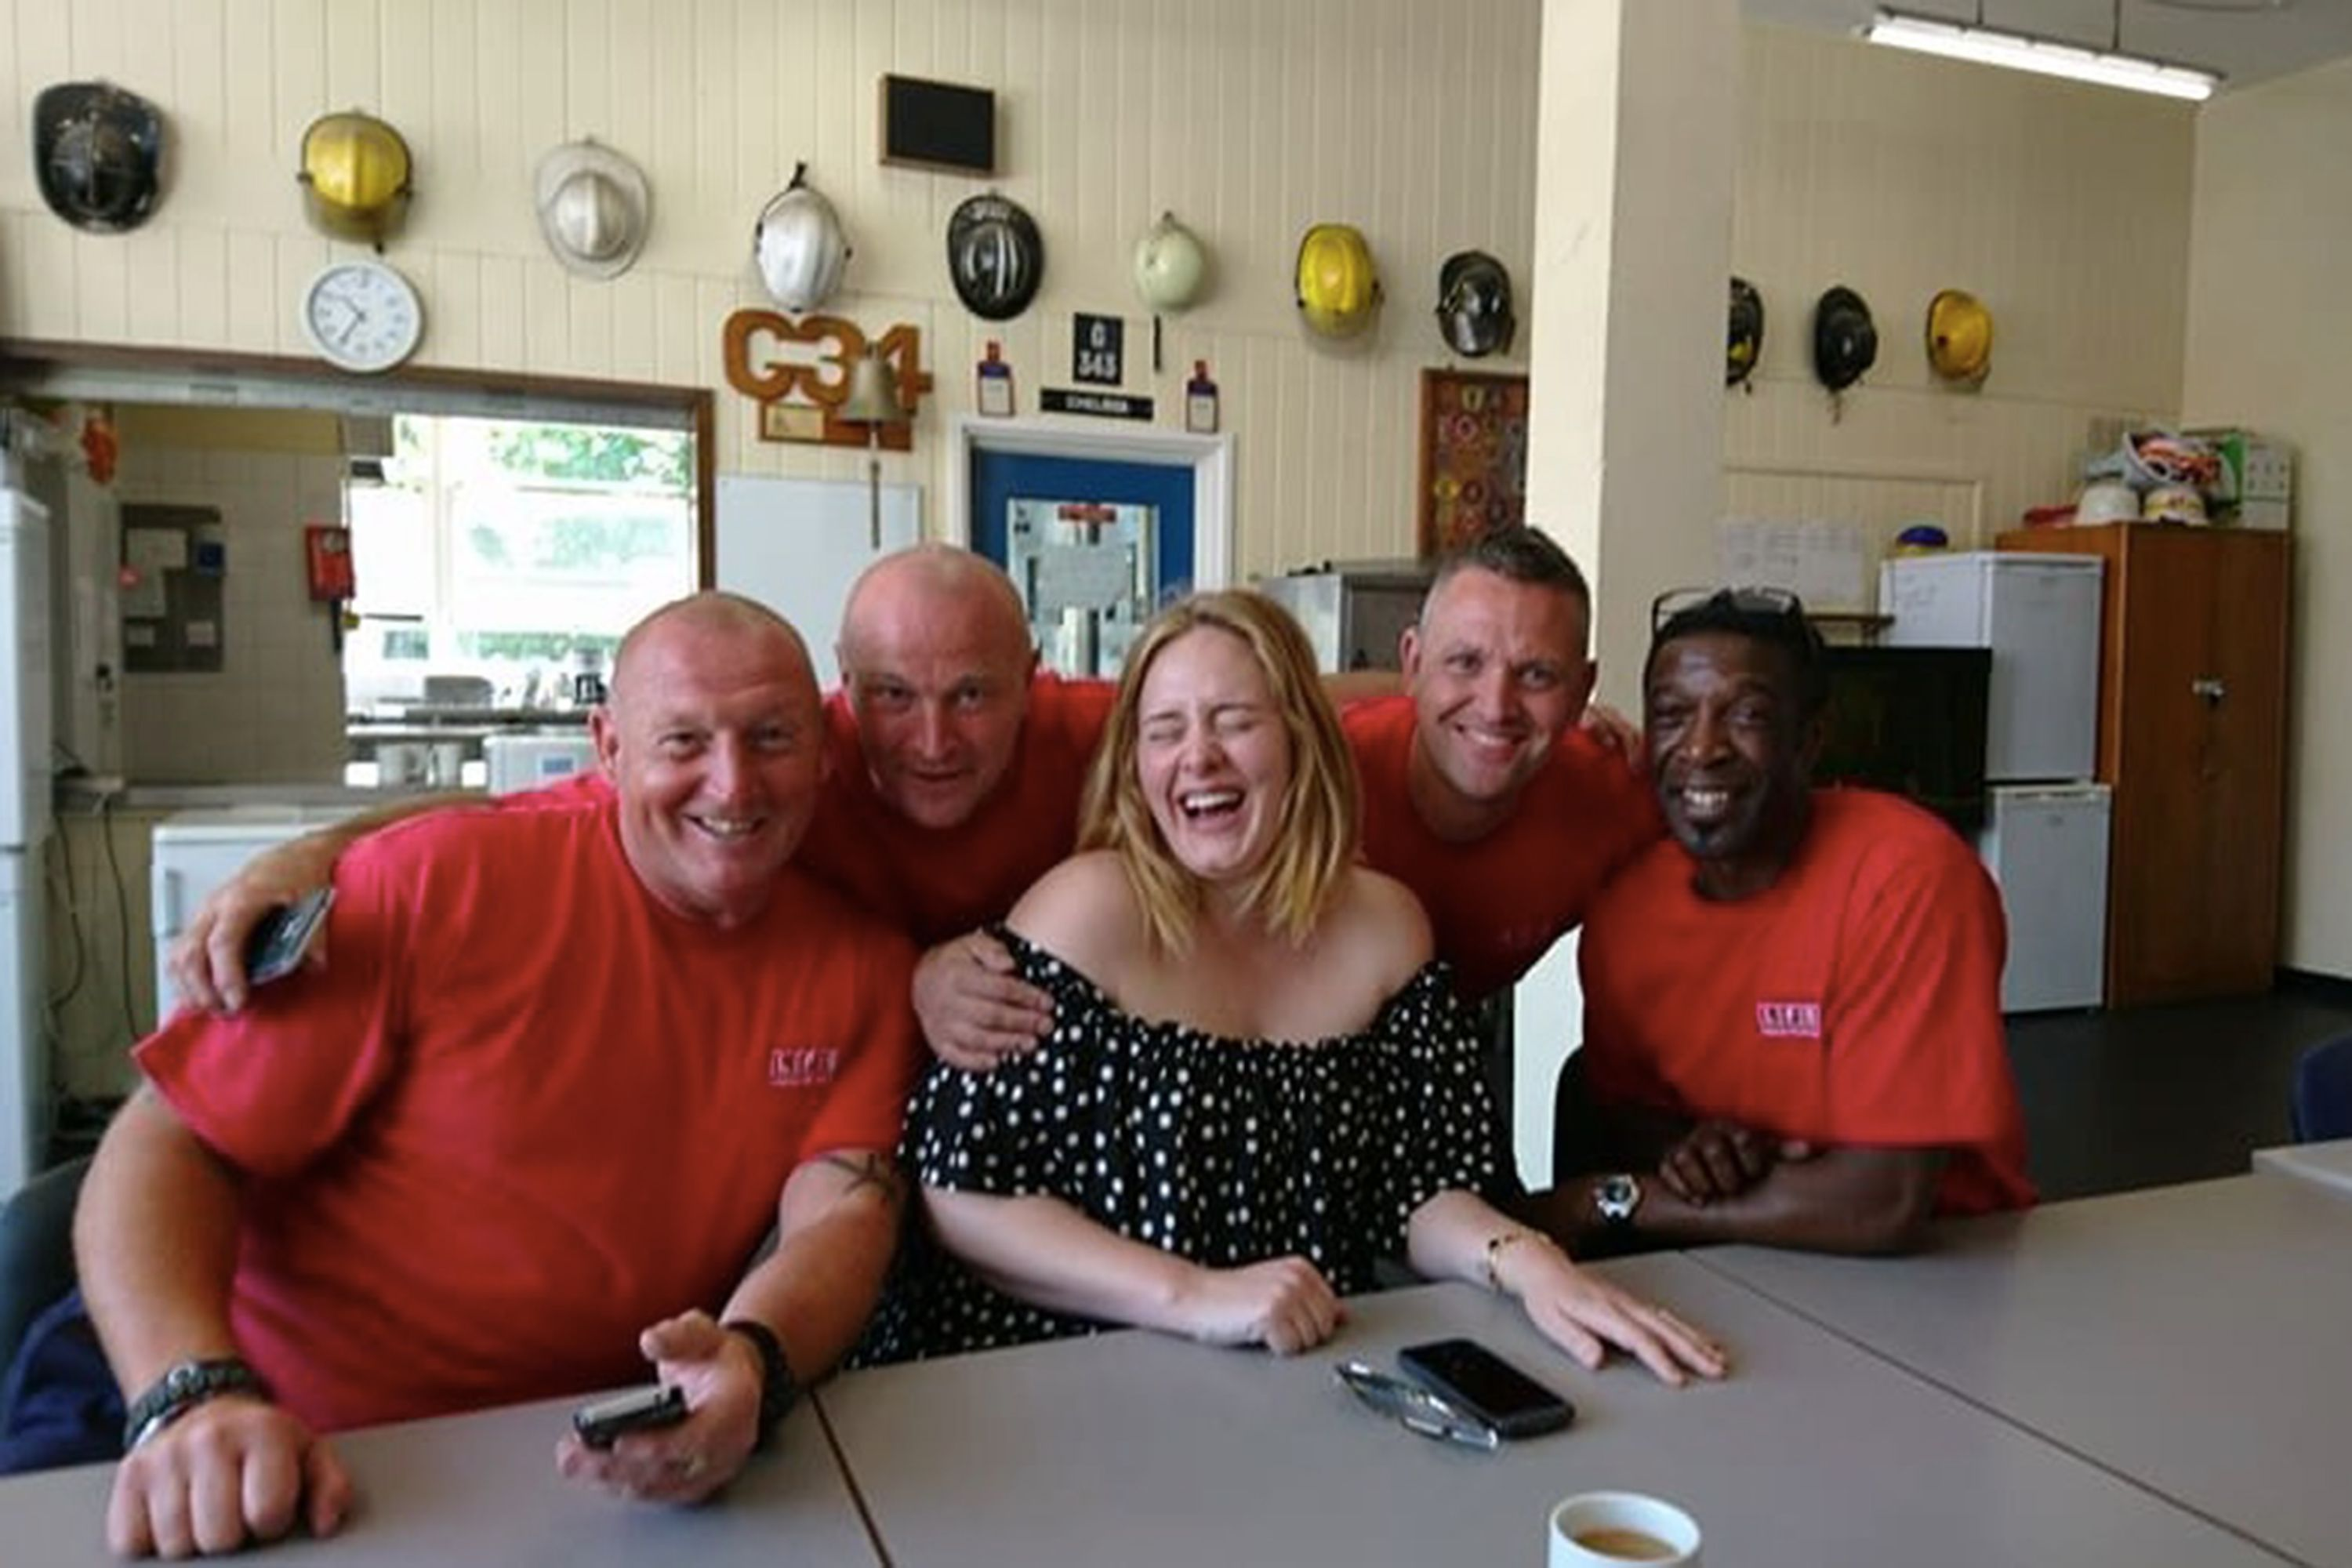 Adele visits Grenfell Tower firefighters for a cup of tea and a cuddle picture